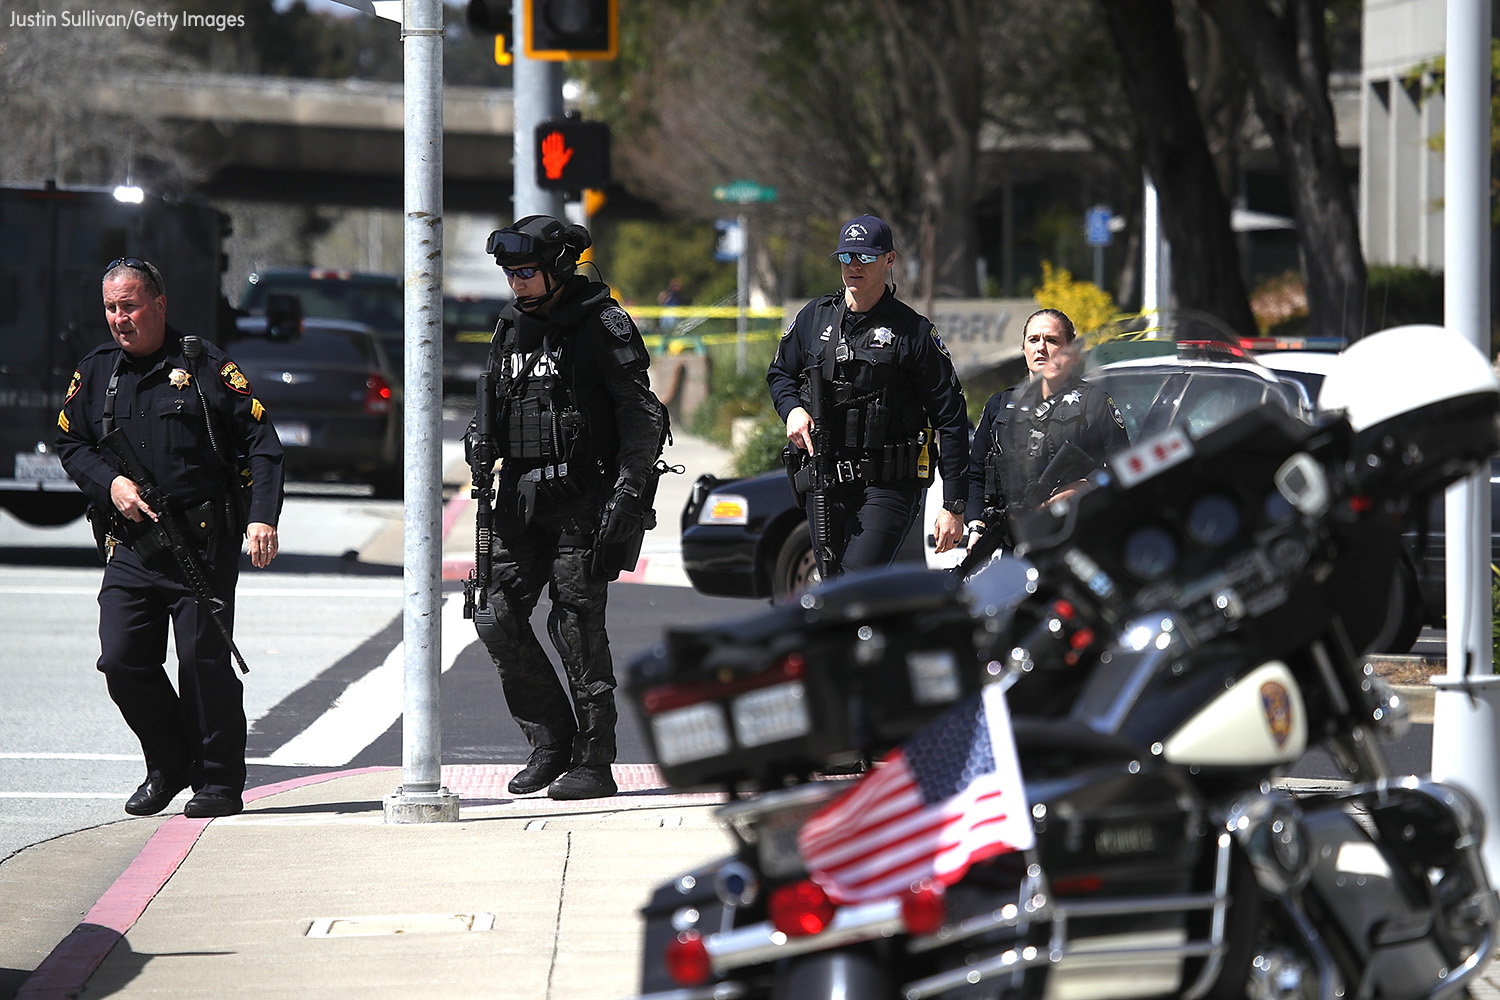 <div class='meta'><div class='origin-logo' data-origin='none'></div><span class='caption-text' data-credit='Justin Sullivan/Getty Images'>Police walk outside of the YouTube headquarters on April 3, 2018 in San Bruno, California.</span></div>